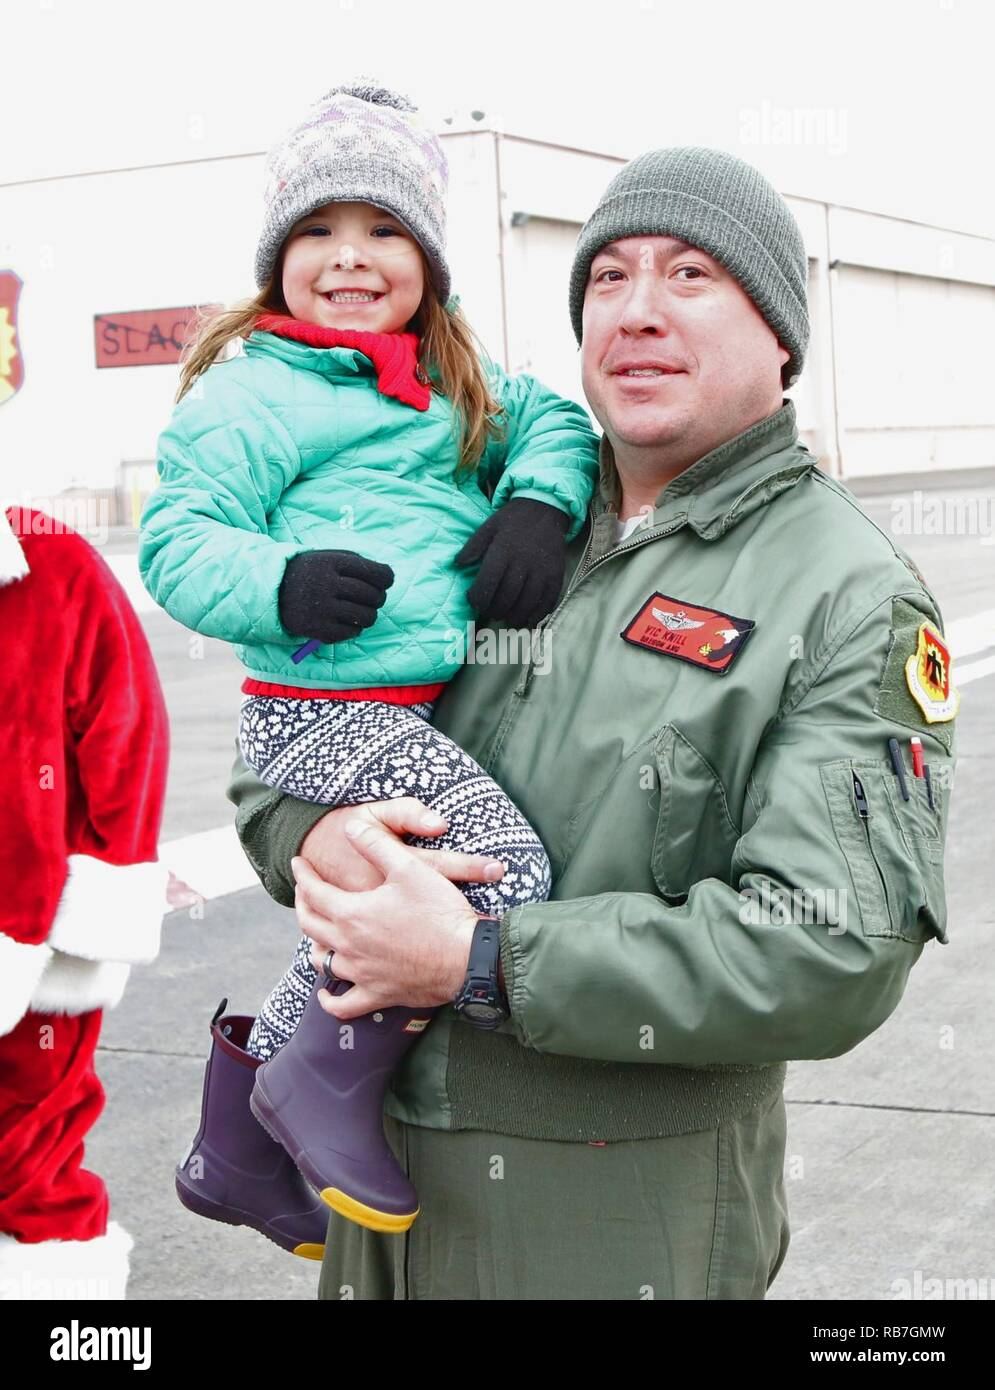 U.S. Air Force Major Vic Knill, and his daughter smile after seeing Santa Clause arrive in an F-15 Eagle during the 173rd Fighter Wing's annual Children's Christmas party at Kingsley Field in Klamath Falls, Ore. Dec. 4, 2016. Santa's arrival in the F-15 was the highlight of the event held for members of the base and their families, and featured games, face painting, hot cocoa, and pictures with Santa and Mrs. Clause. - Stock Image